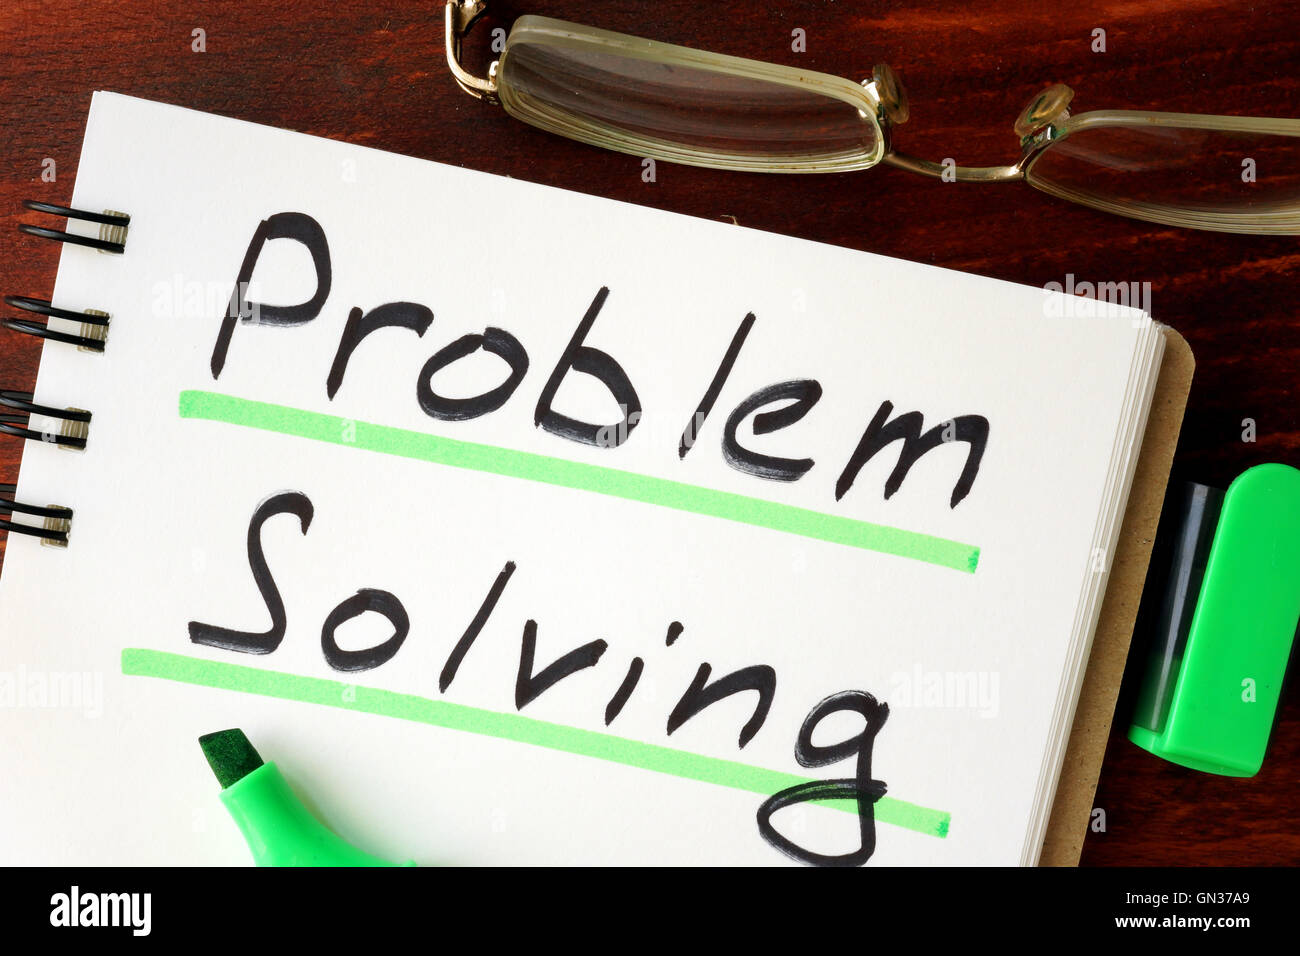 Problem solving sign written in a notepad. - Stock Image